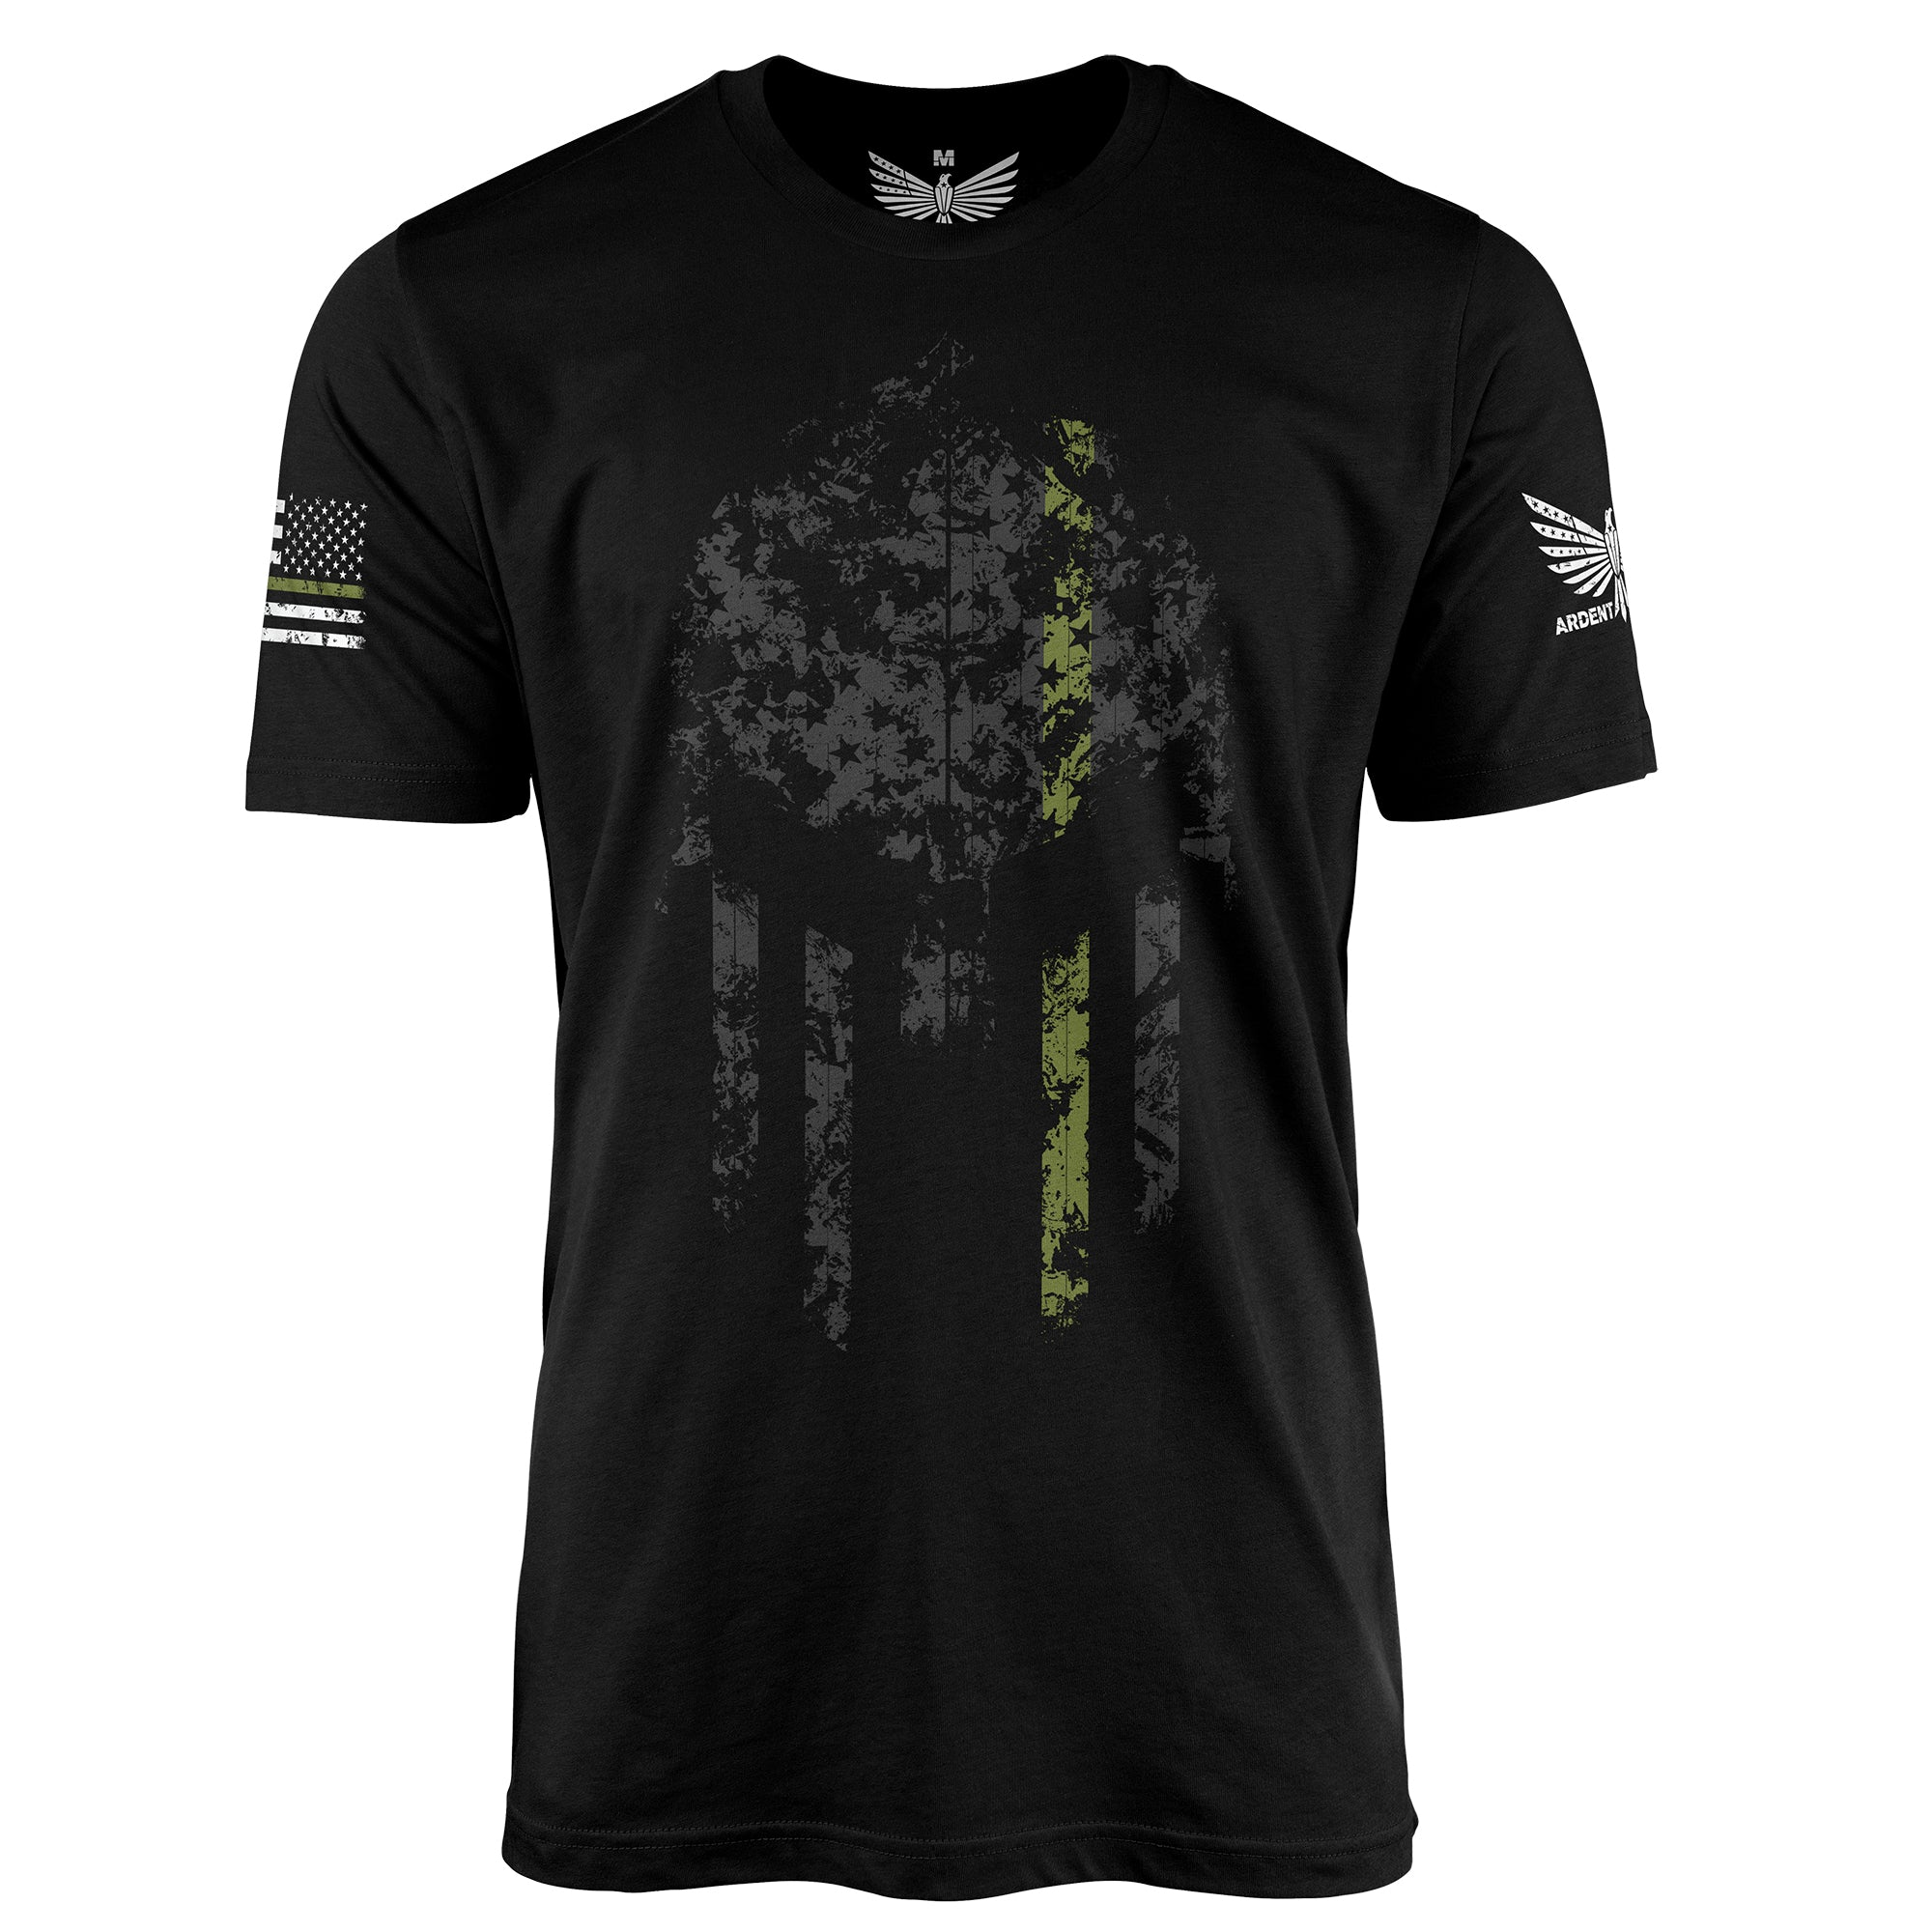 Thin Green Line Spartan-Men's Shirt-S-Ardent Patriot Apparel Co.